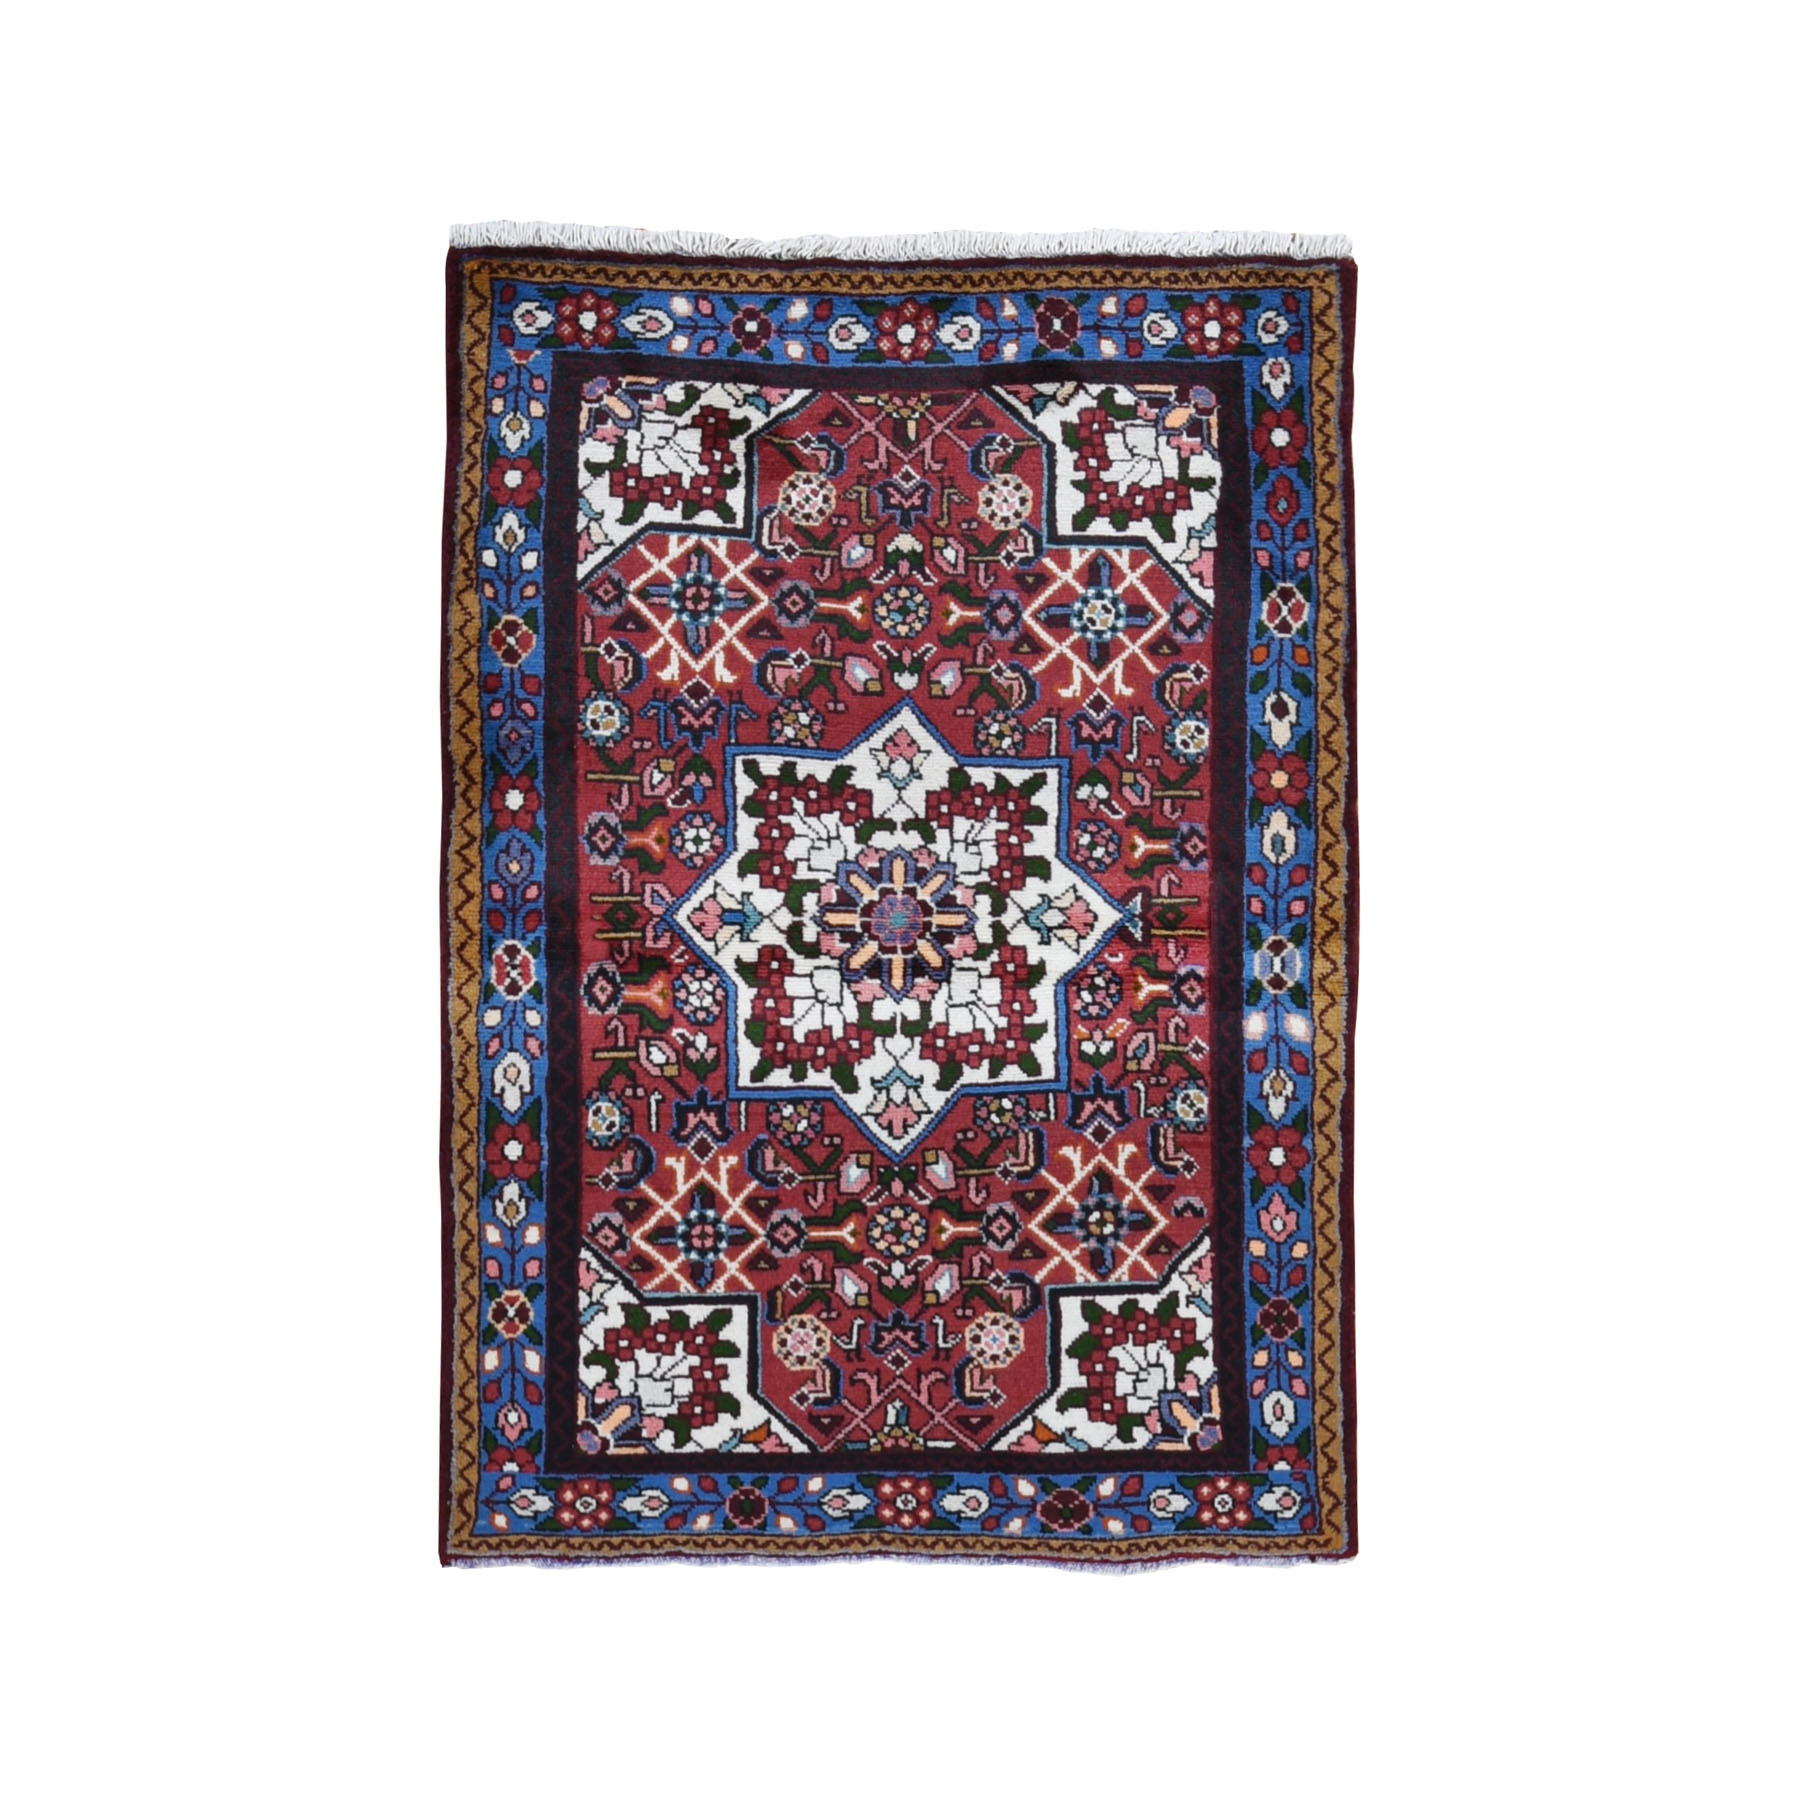 "3'4""x4'10"" Red New Persian Hamadan Flower Bouquet Design Pure Wool Hand Woven Bohemian Rug"